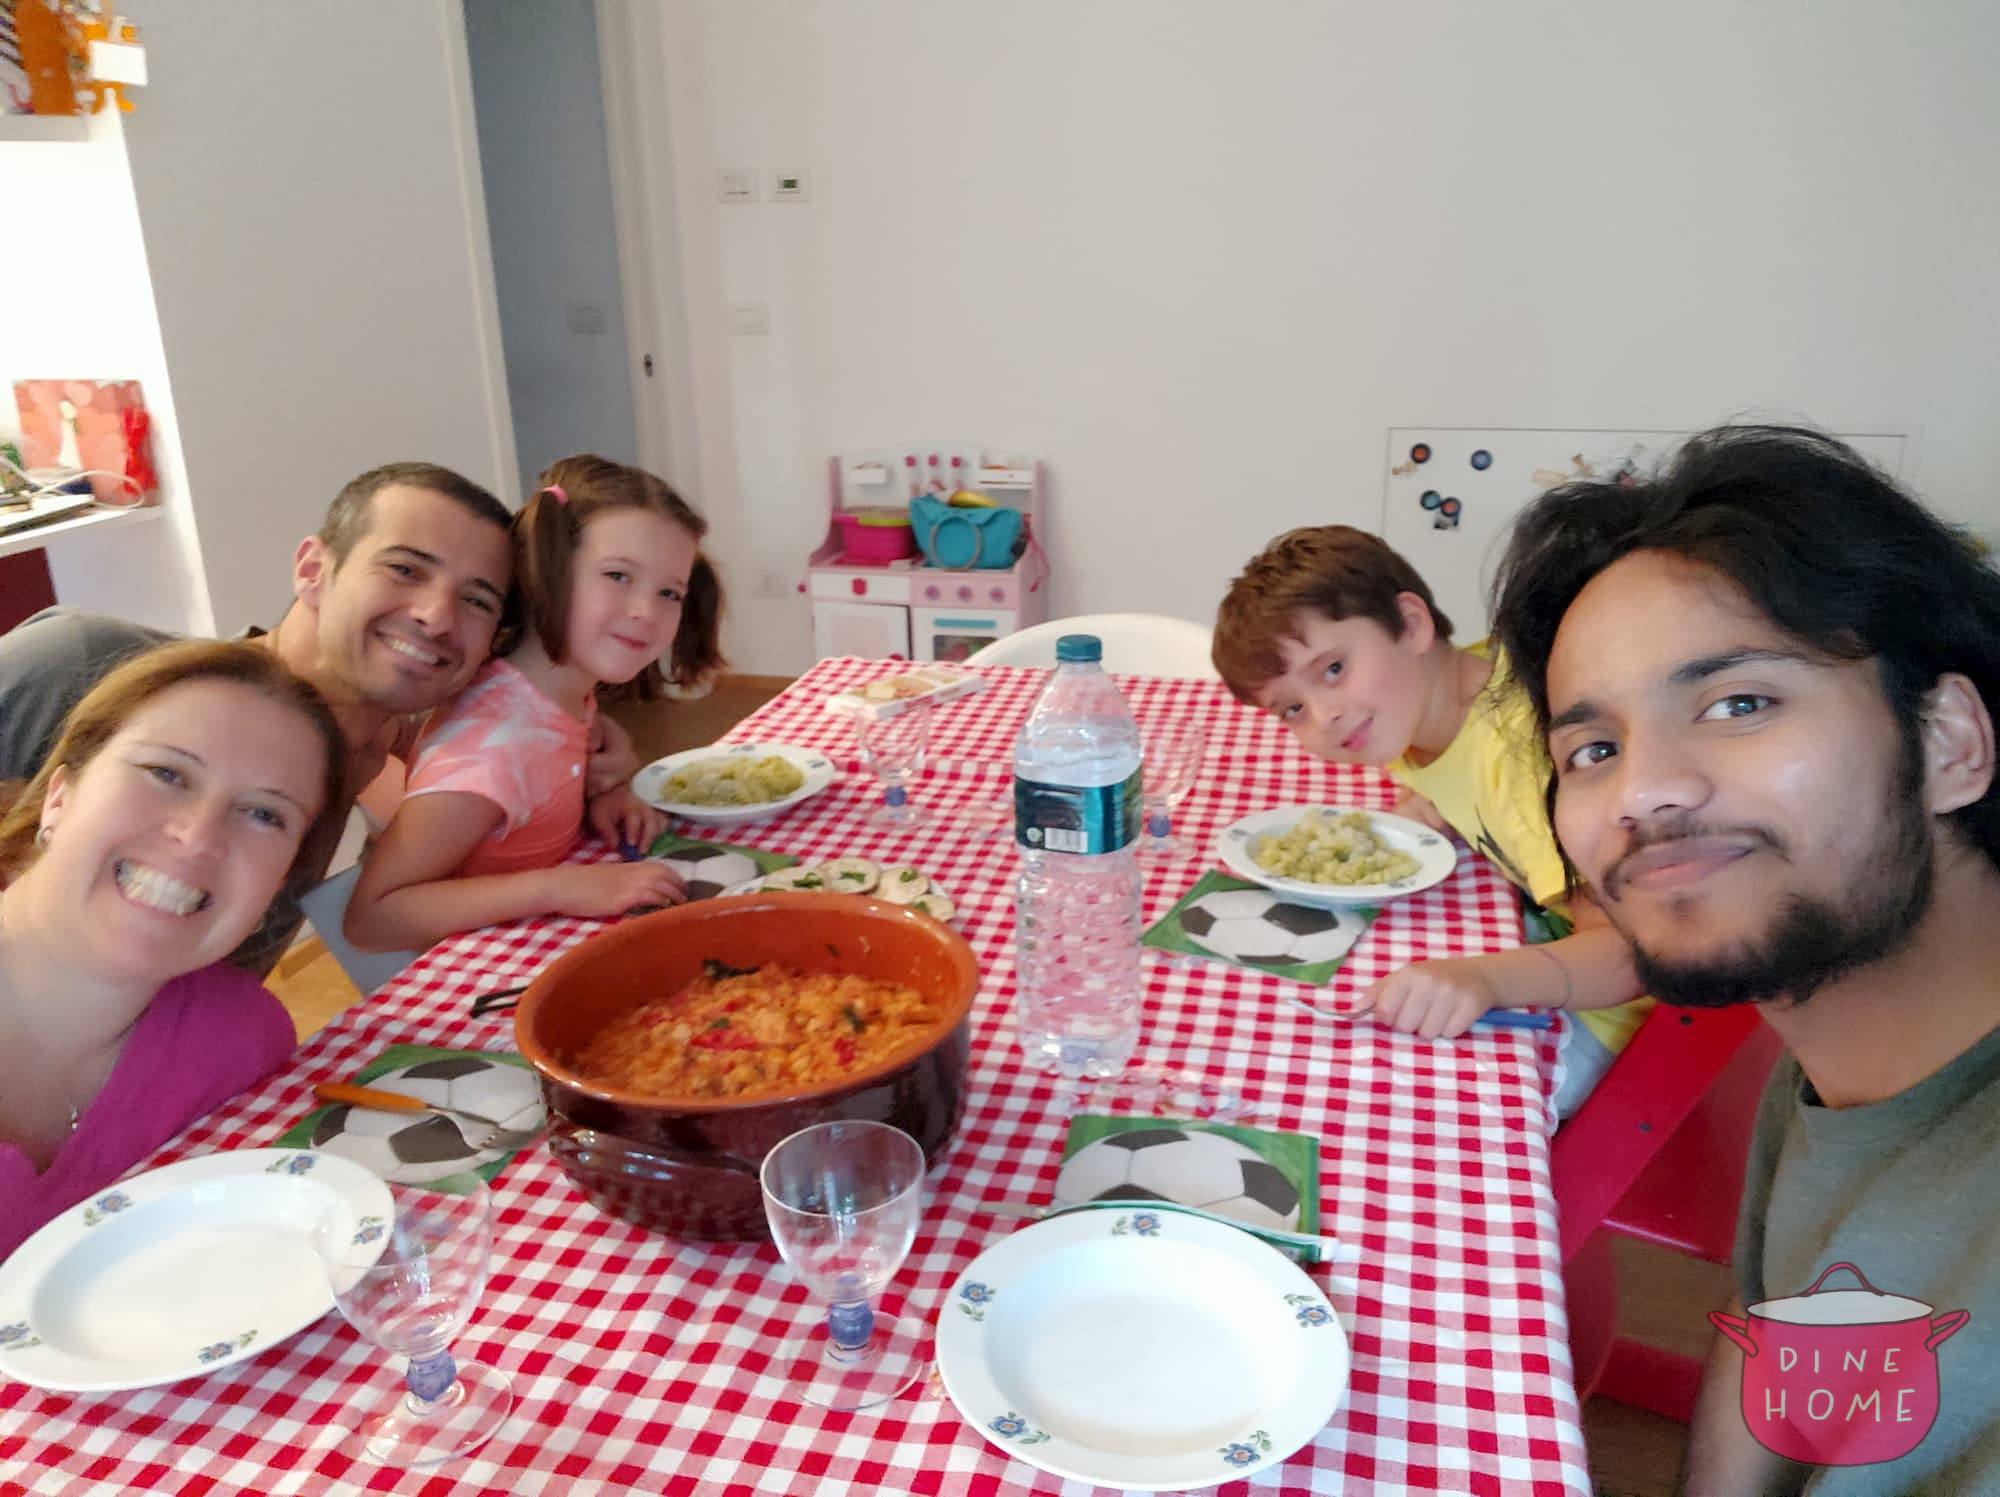 Omar, Indian student, having dinner with his Dinehome family.